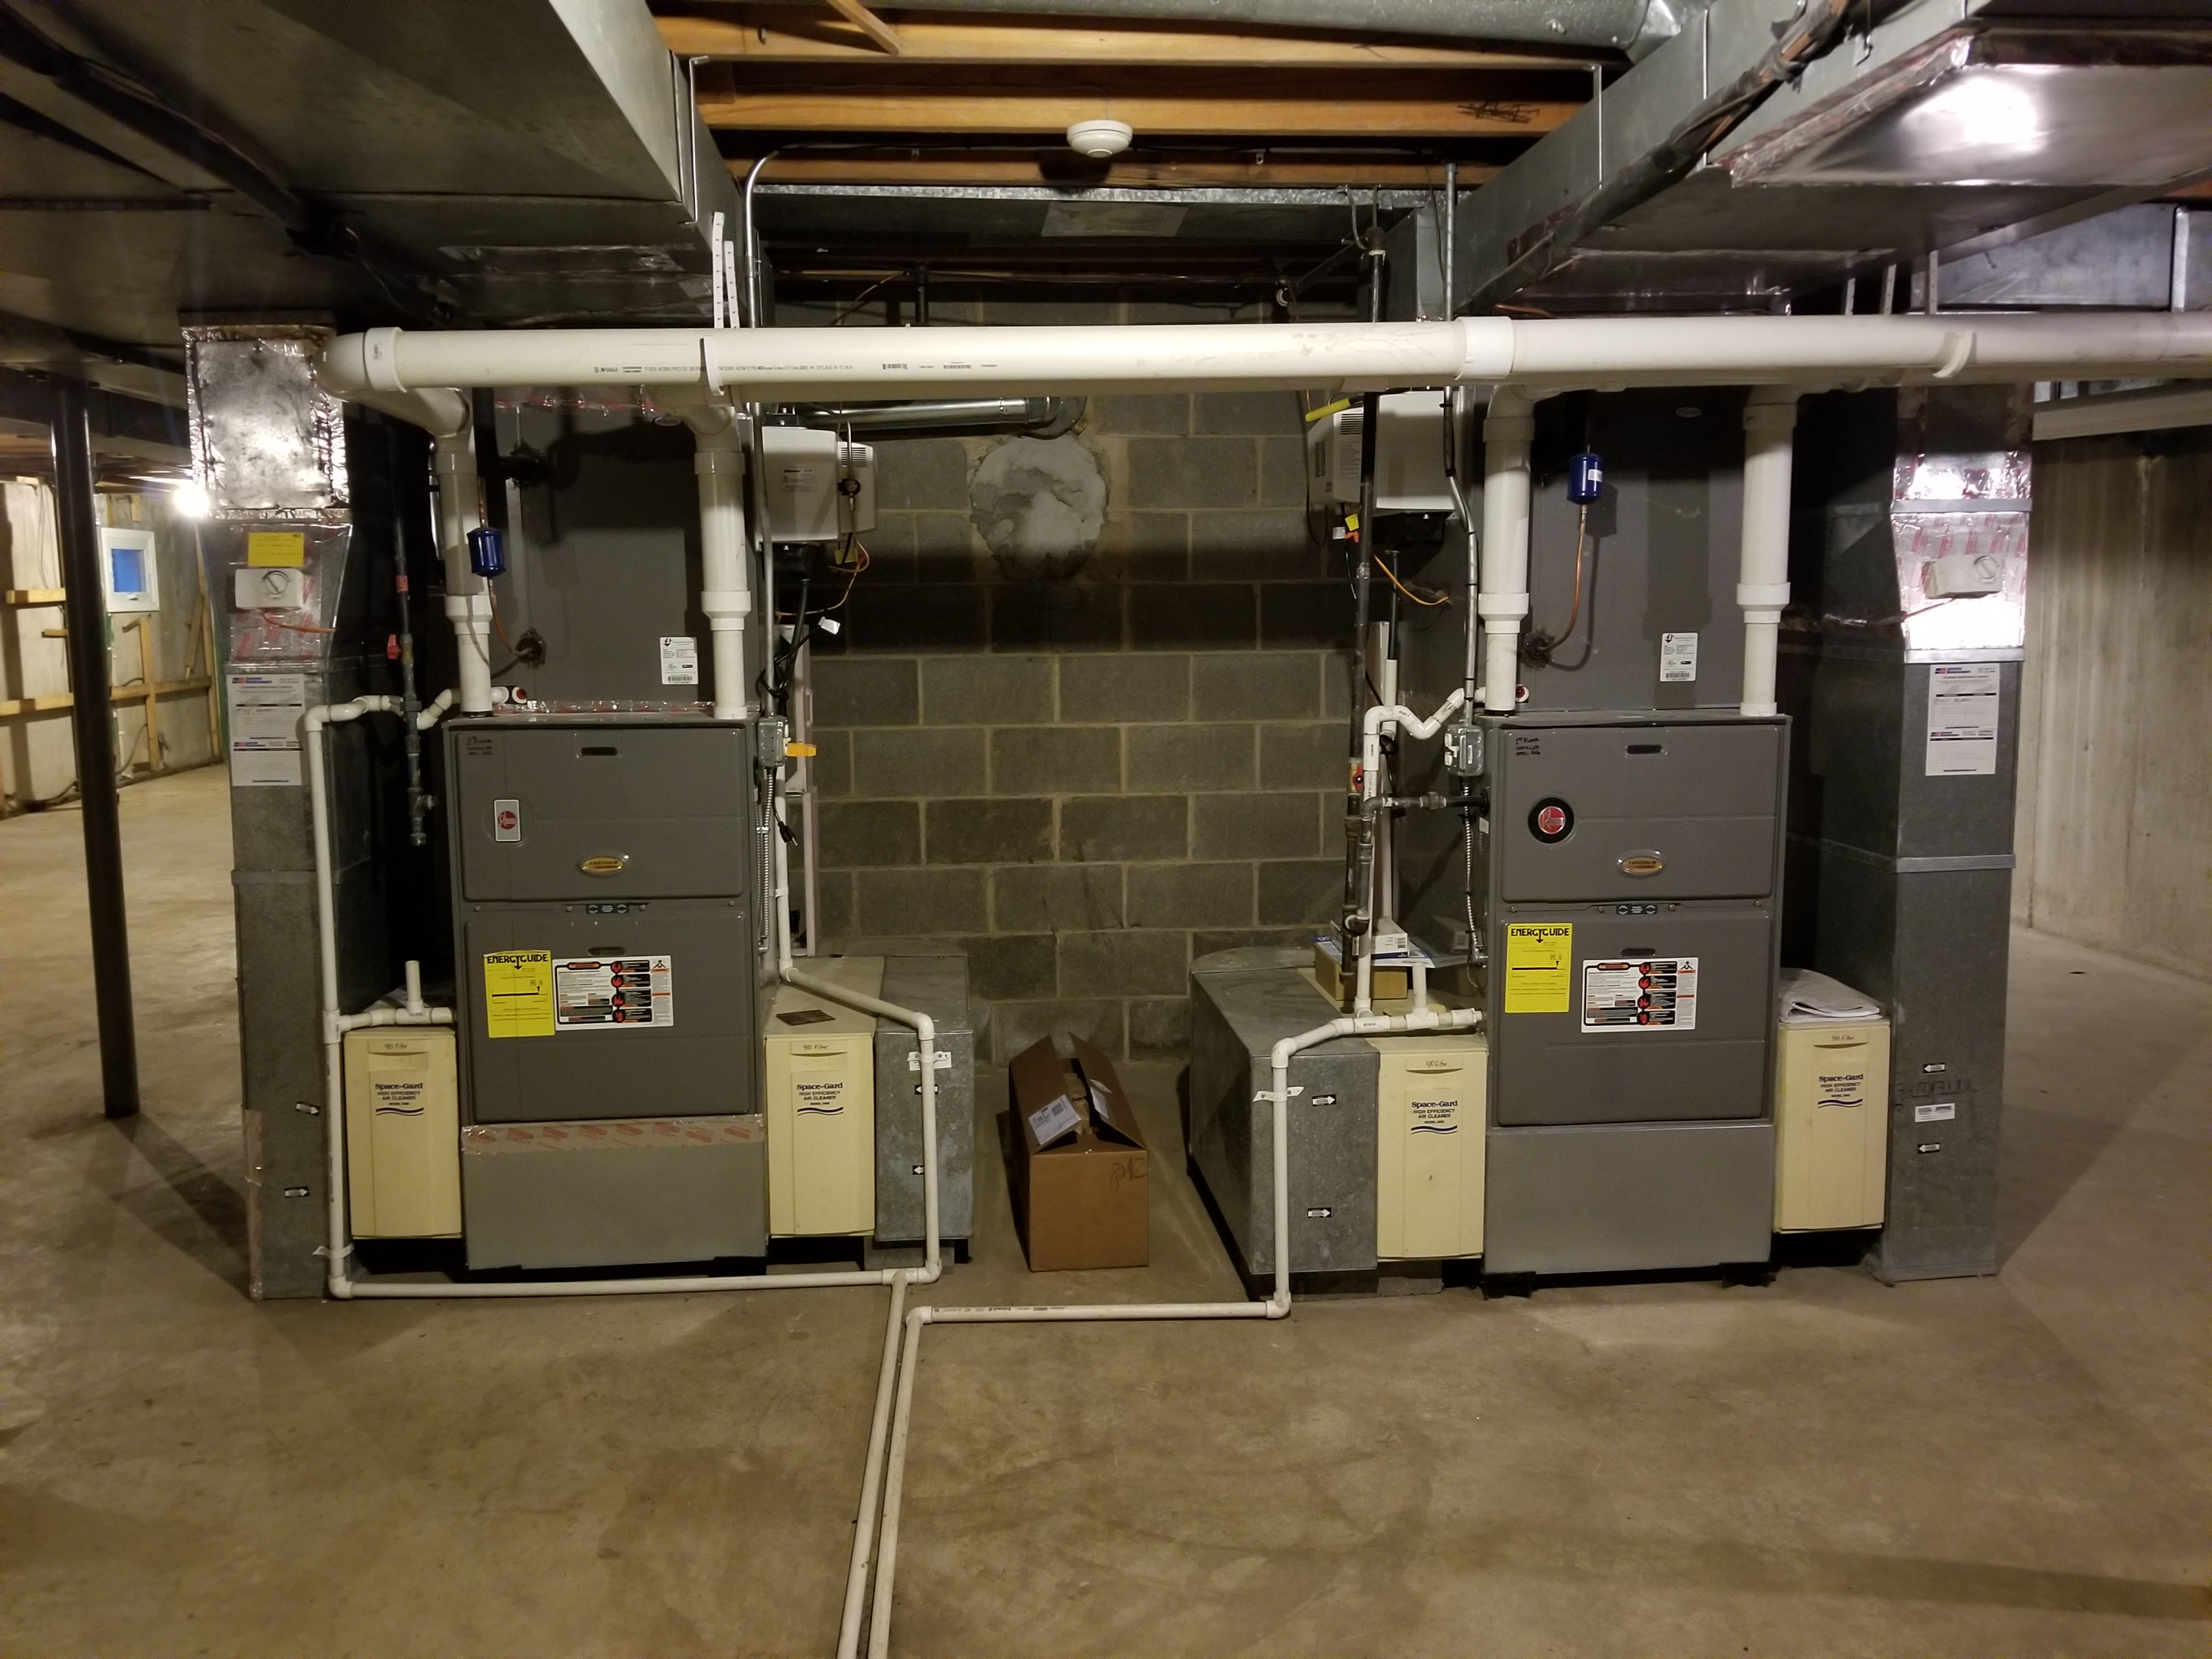 Performed annual maintenance on the Rheem furnaces, Space-Gard air filters and GeneralAire humidifiers. Made adjustments to improve the overall efficiency and life expectancy of the equipment